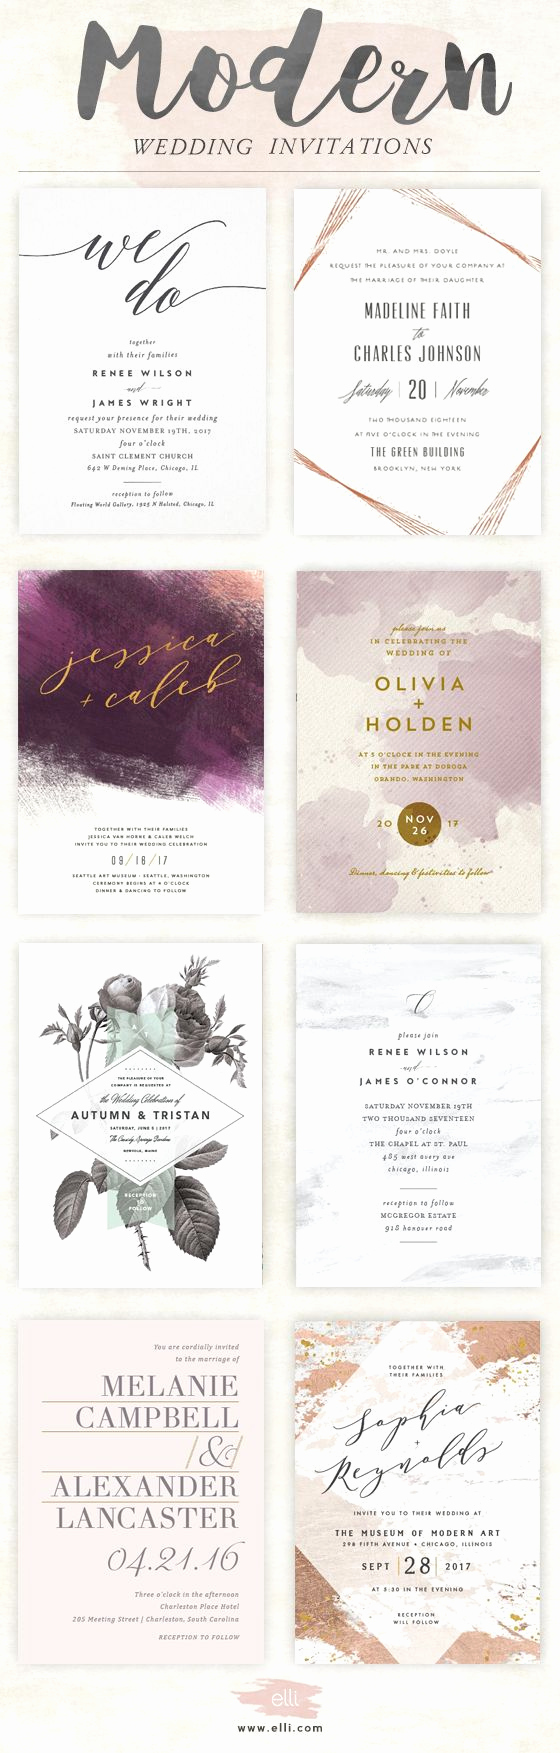 Pinterest Wedding Invitation Ideas Elegant 25 Best Ideas About Wedding Invitations On Pinterest